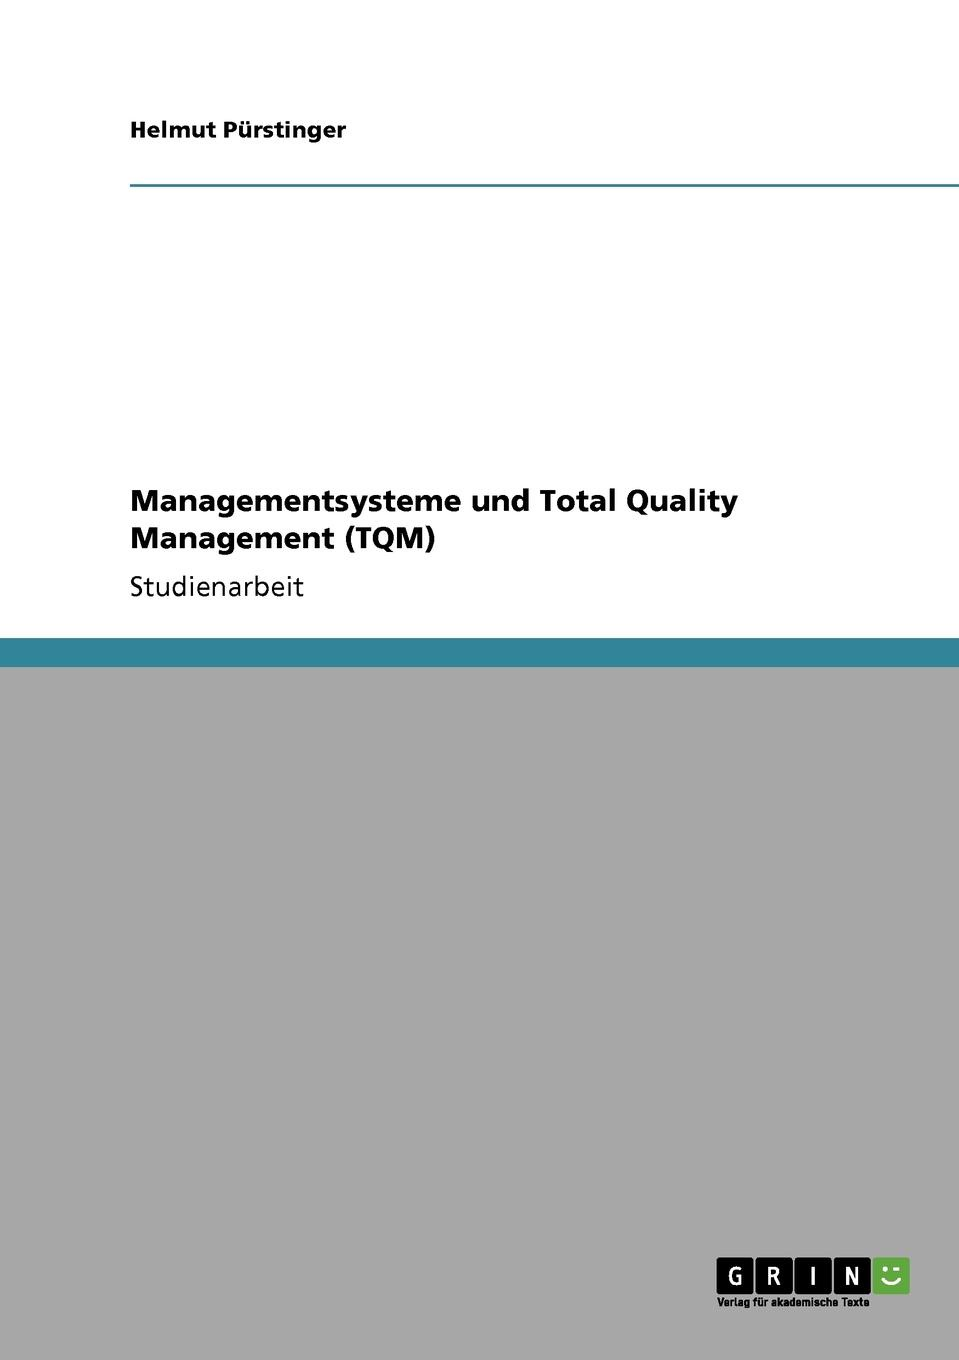 Helmut Pürstinger Managementsysteme und Total Quality Management (TQM) abadal salam t hussain measurement techniques of total quality management tqm